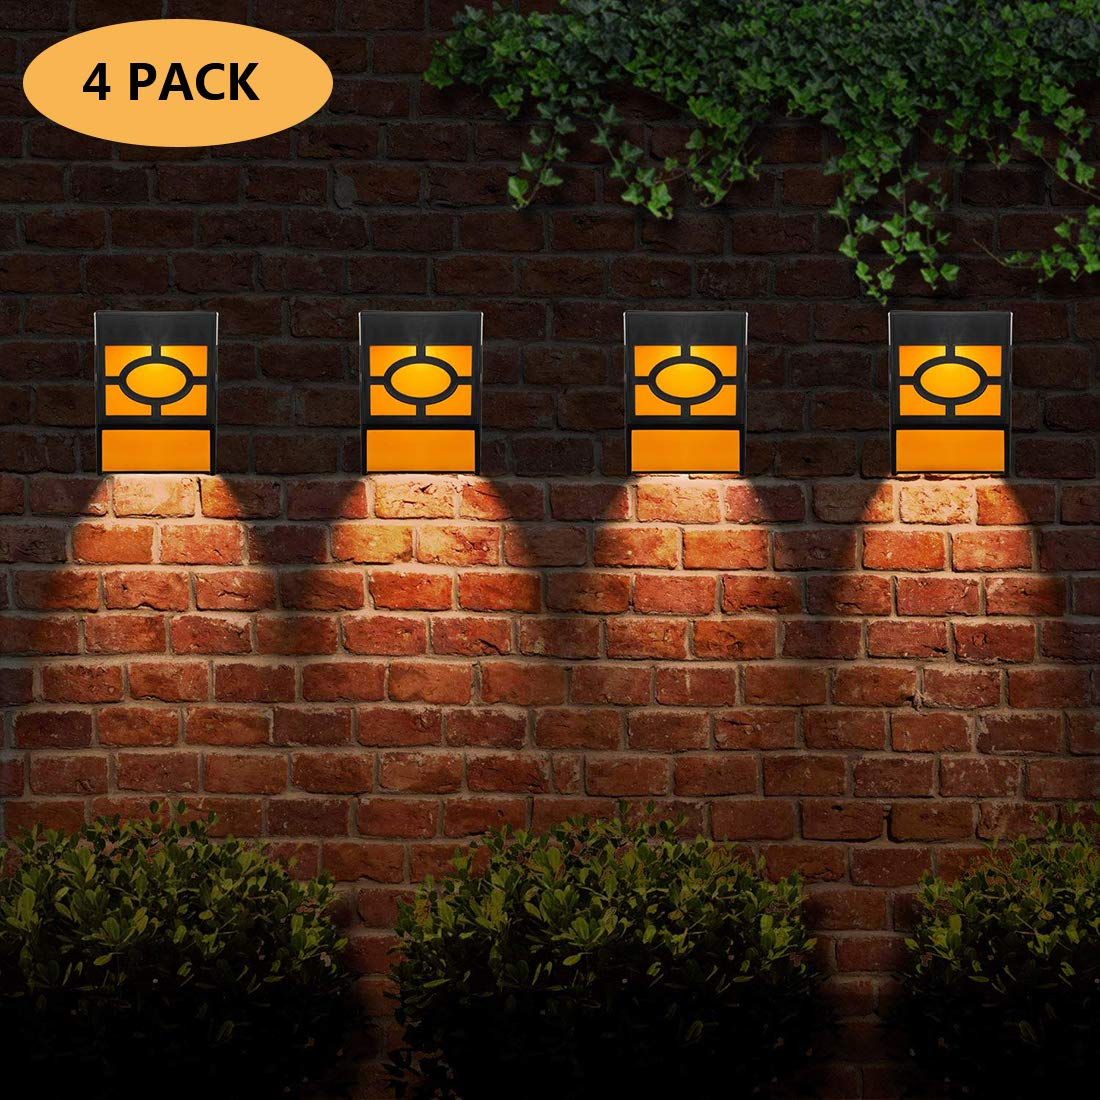 Solar Wall Lights Outdoor Waterproof LED Solar Fence Lights Decorative for Outdoor Deck, Courtyard, Stairs, Path, Front Door, Landscape, Pack of 4